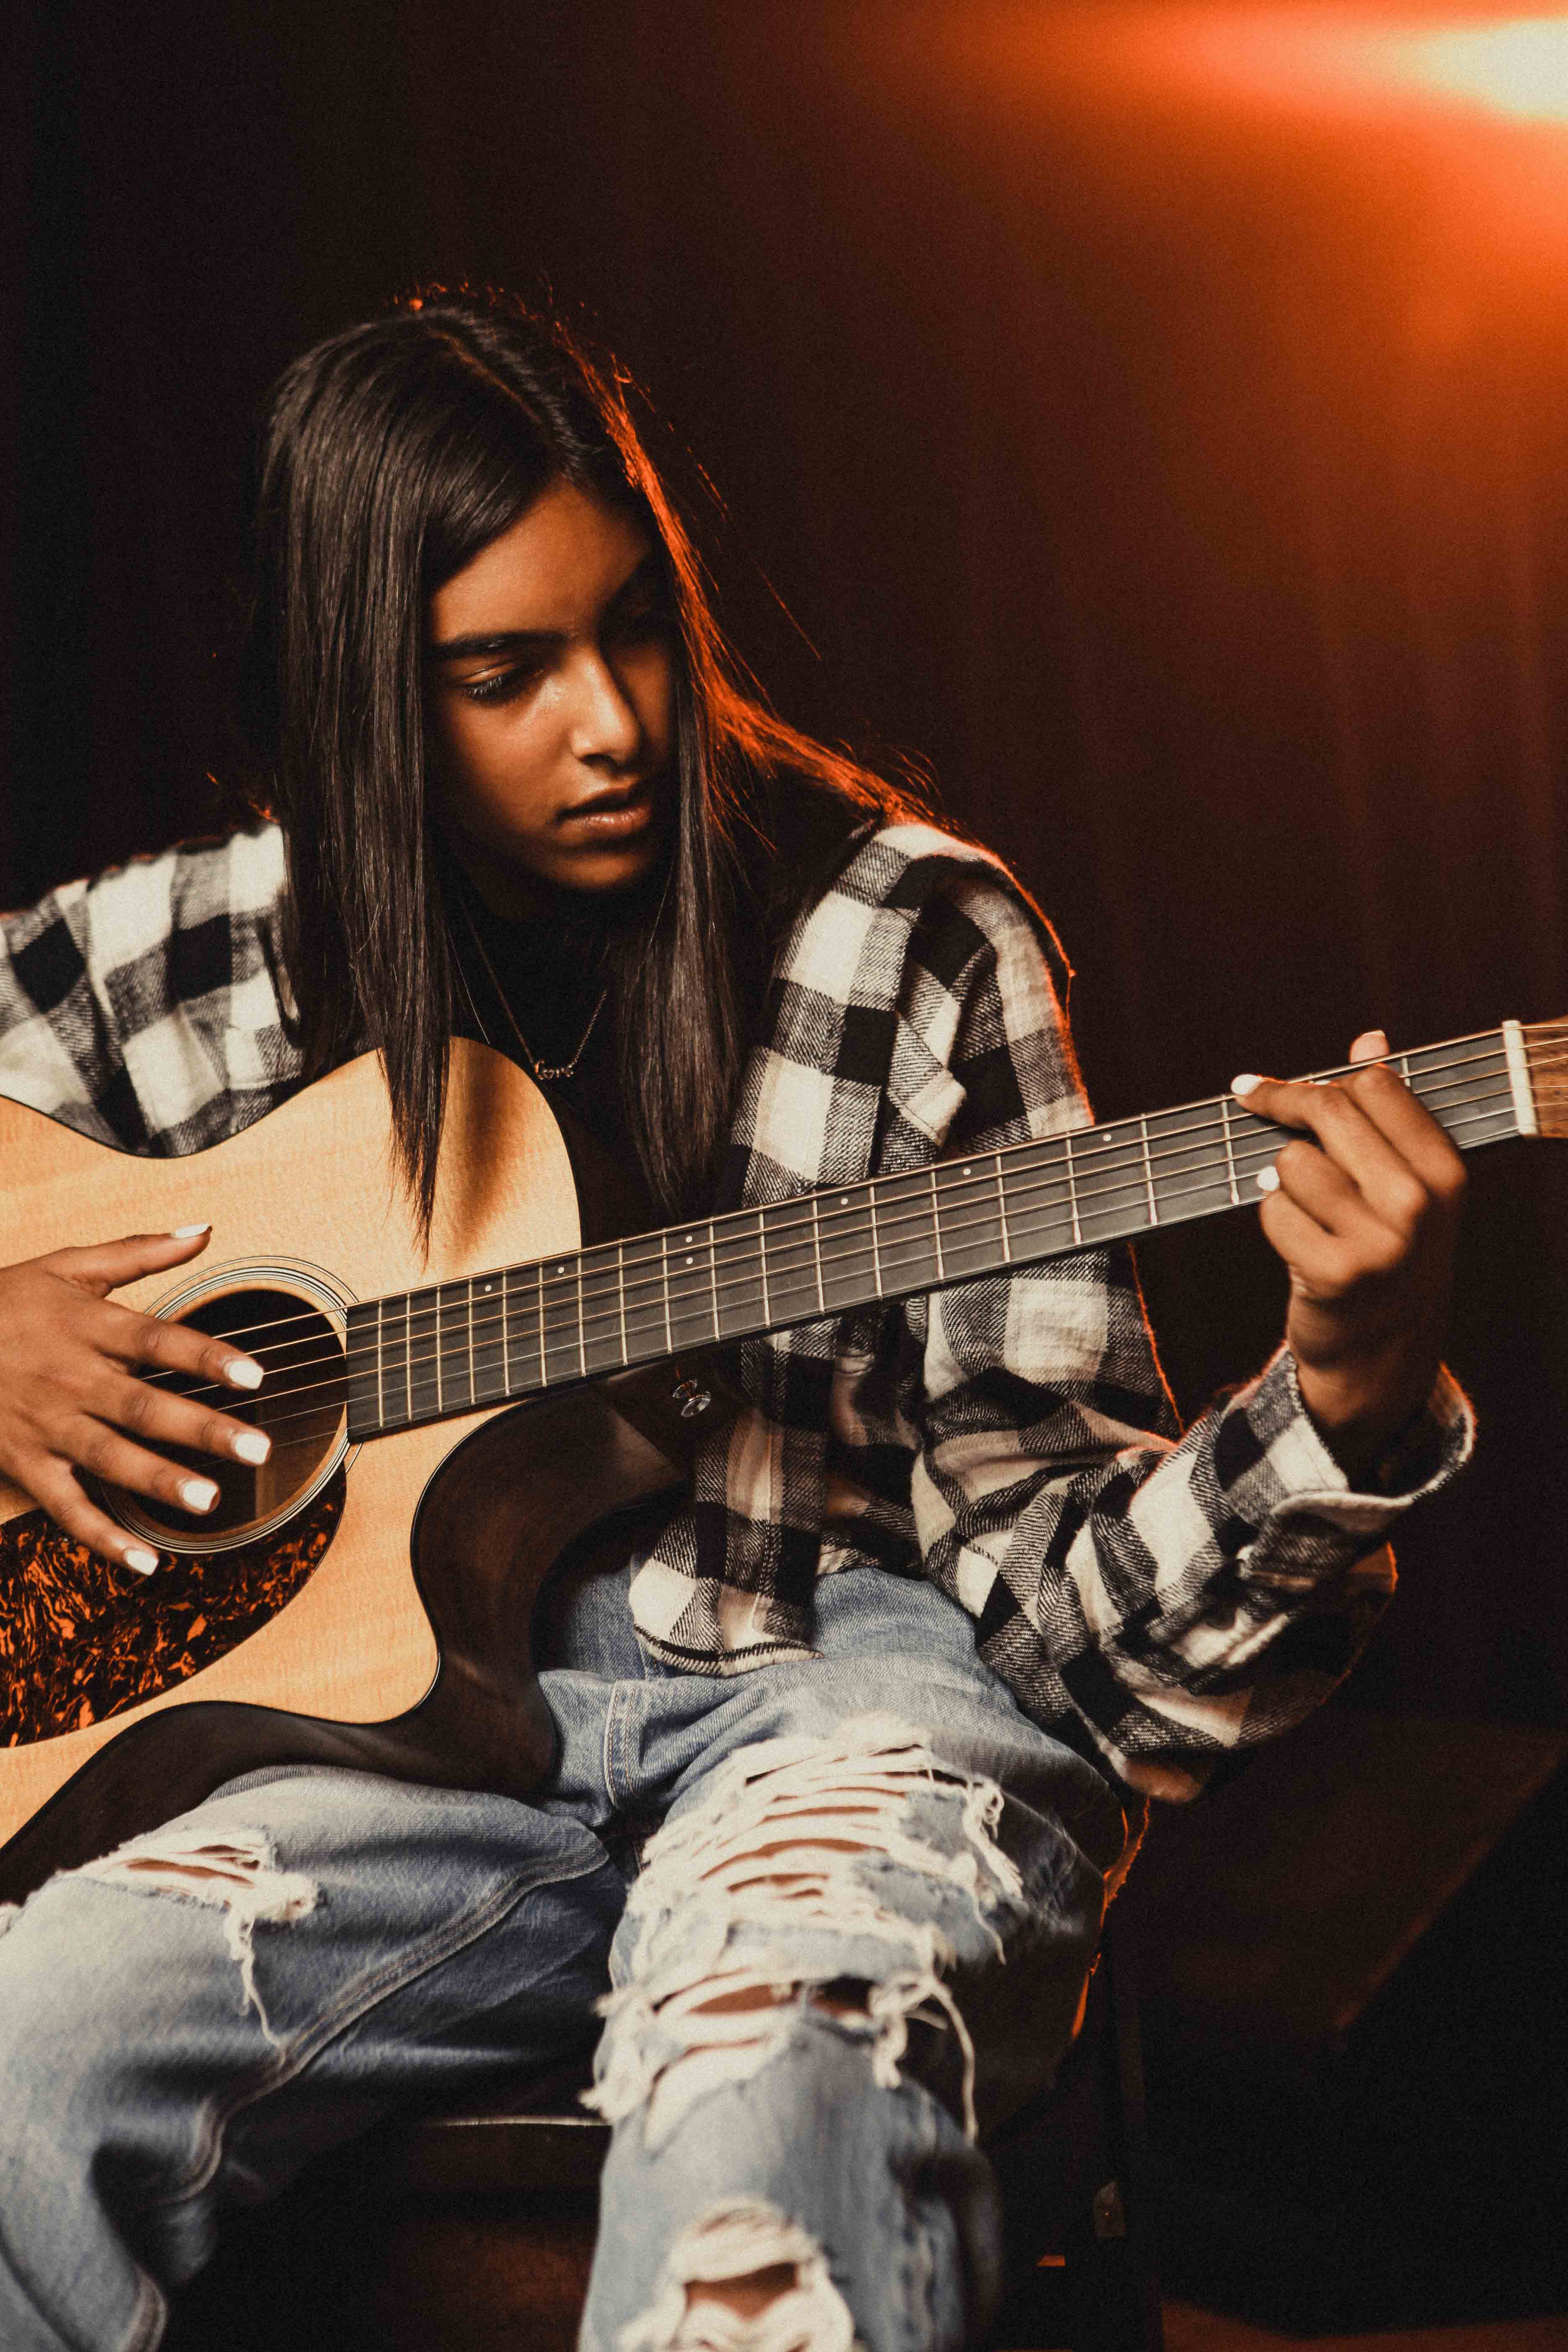 Photo of person playing an acoustic guitar